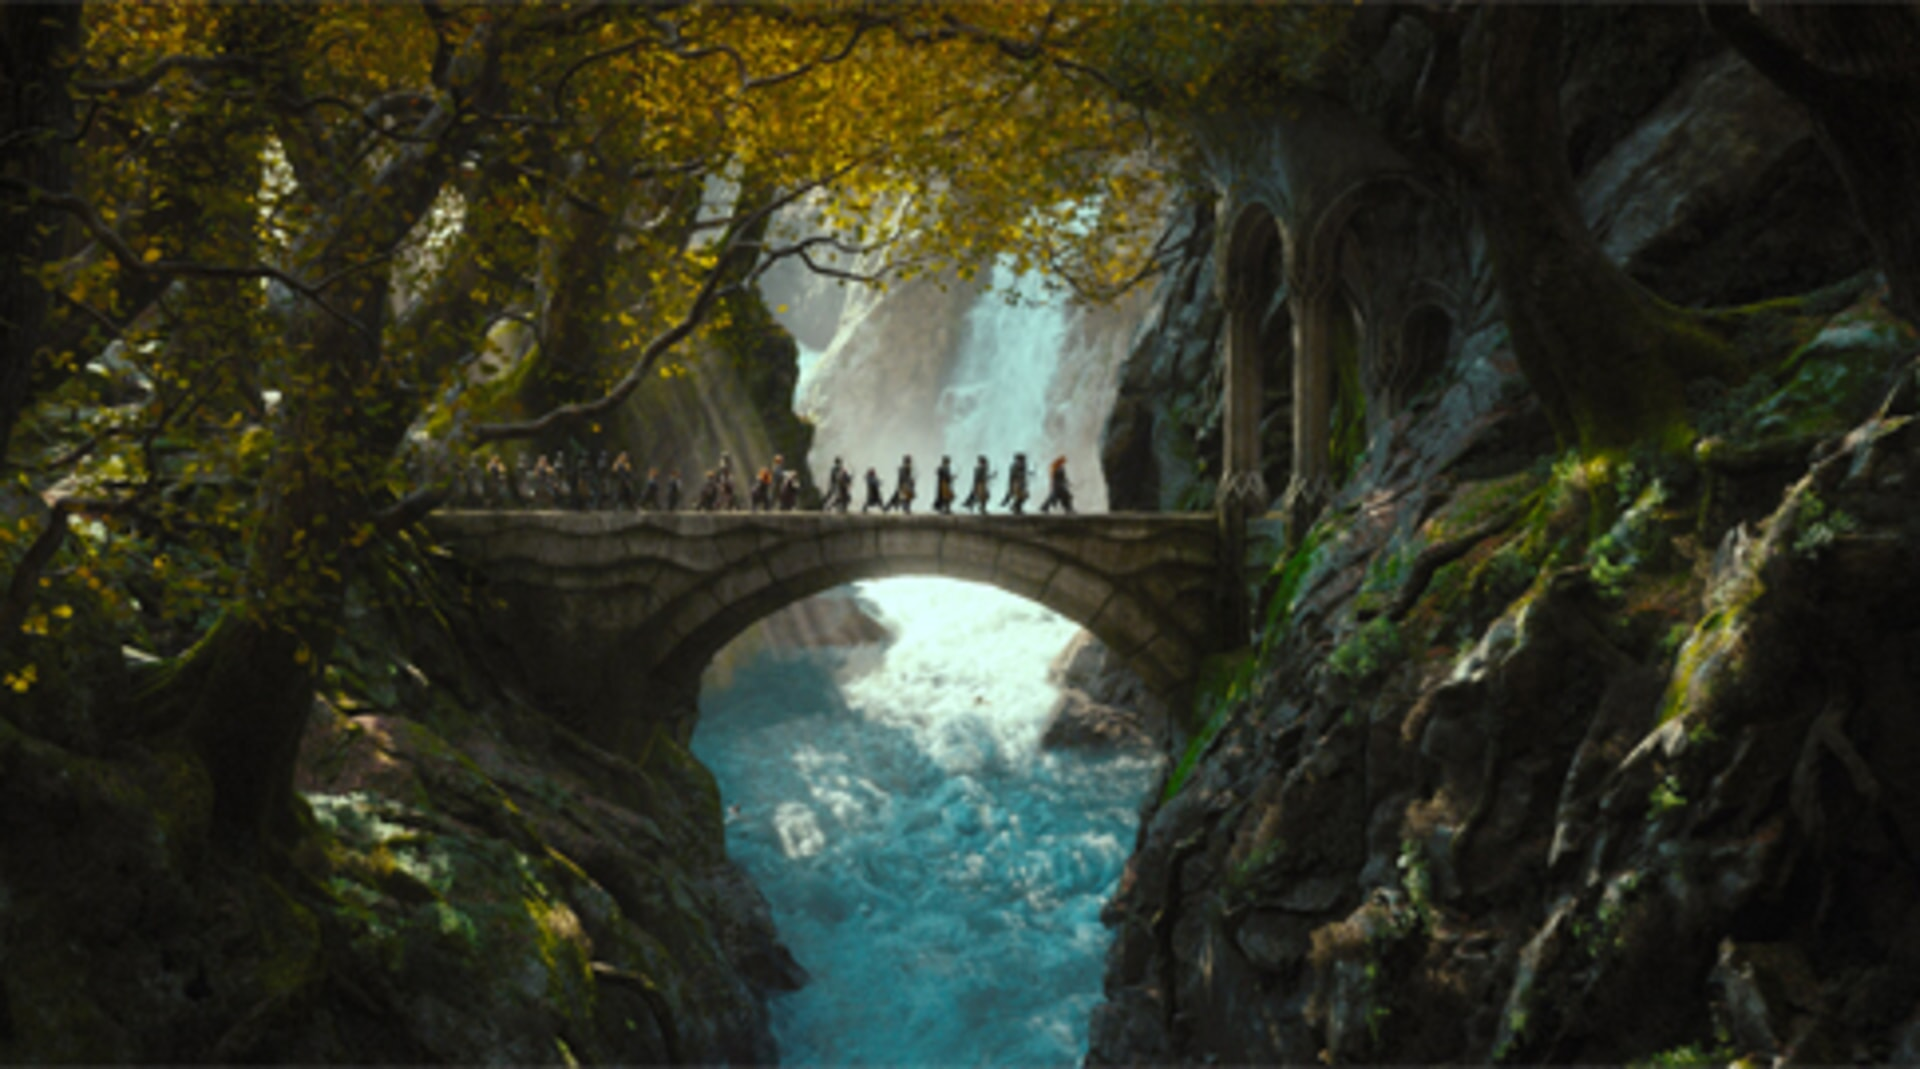 The Hobbit: The Desolation of Smaug - Image 9